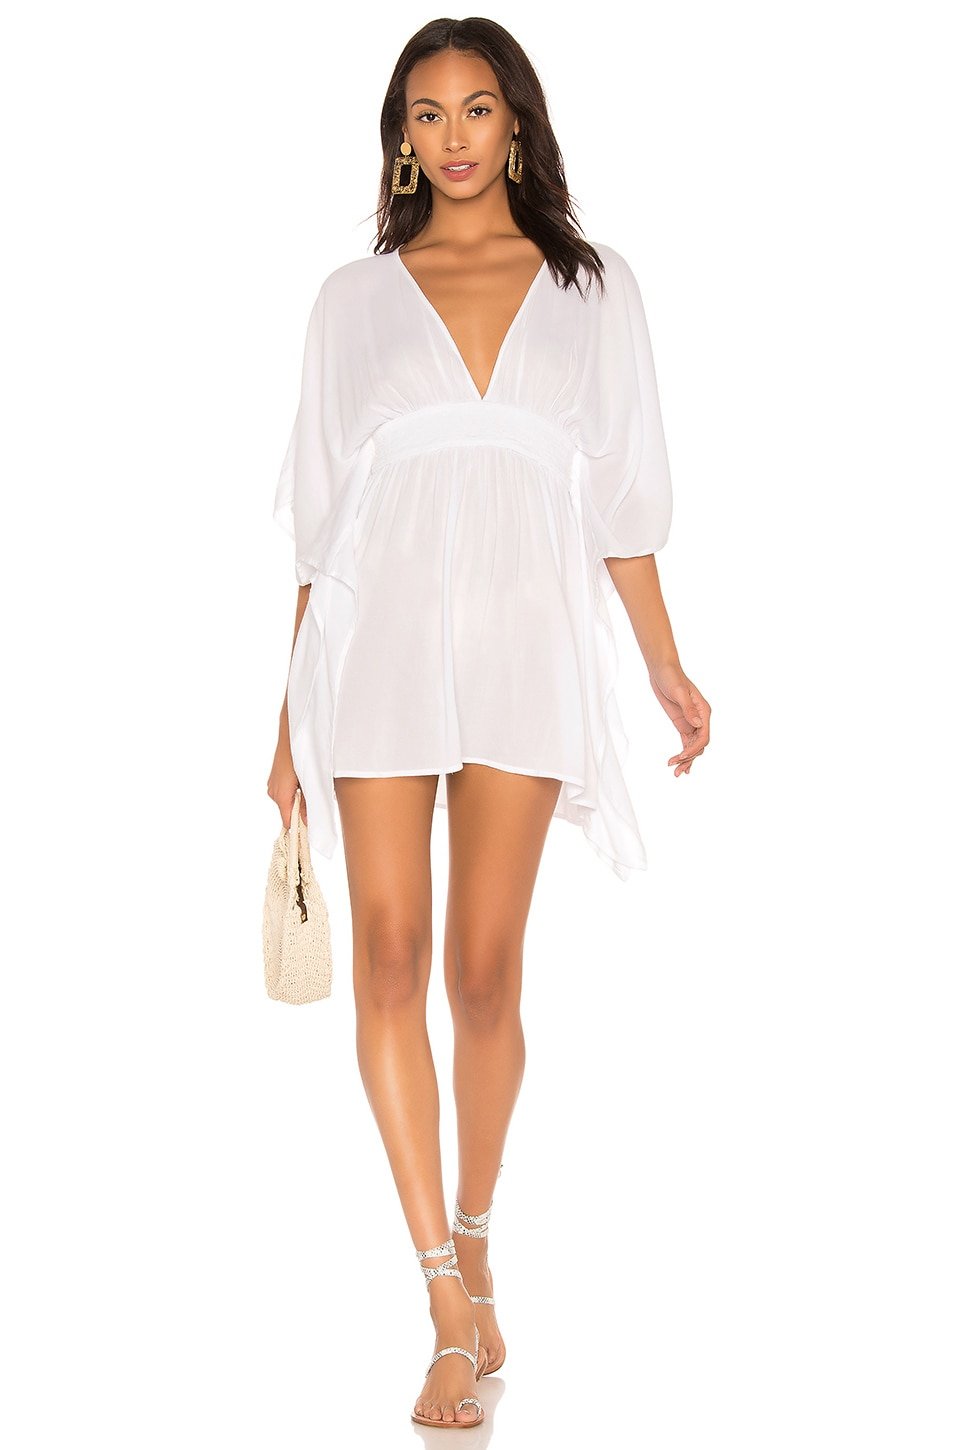 Indah Avalon Mini Dress in White